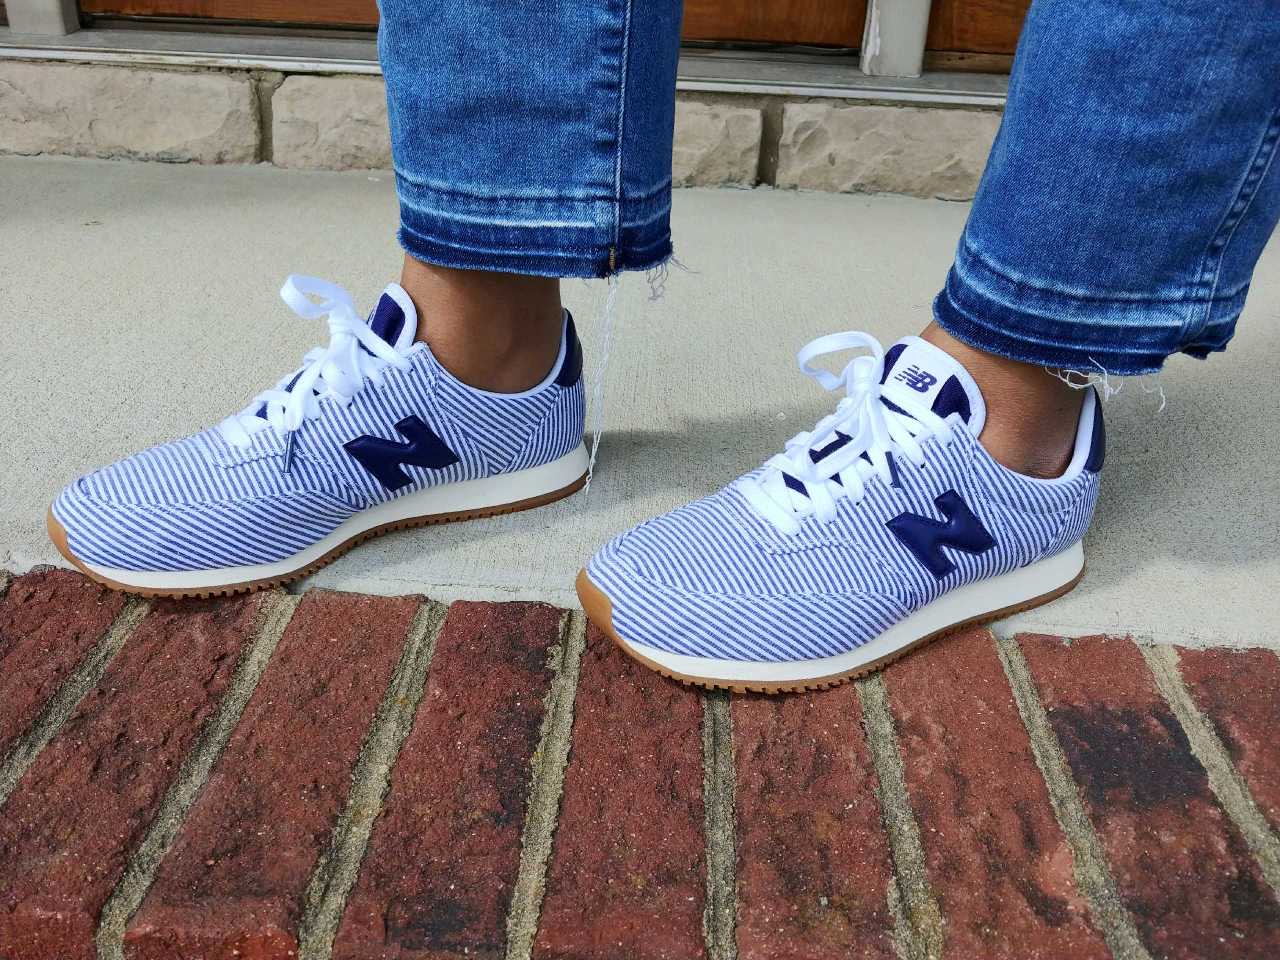 New Balance sneakers by popular Kentucky fashion blog, Really Rynetta: image of a woman wearing a pair of jeans and a pair of New Balance X J. Crew Comp 100 Sneakers in Stripe.